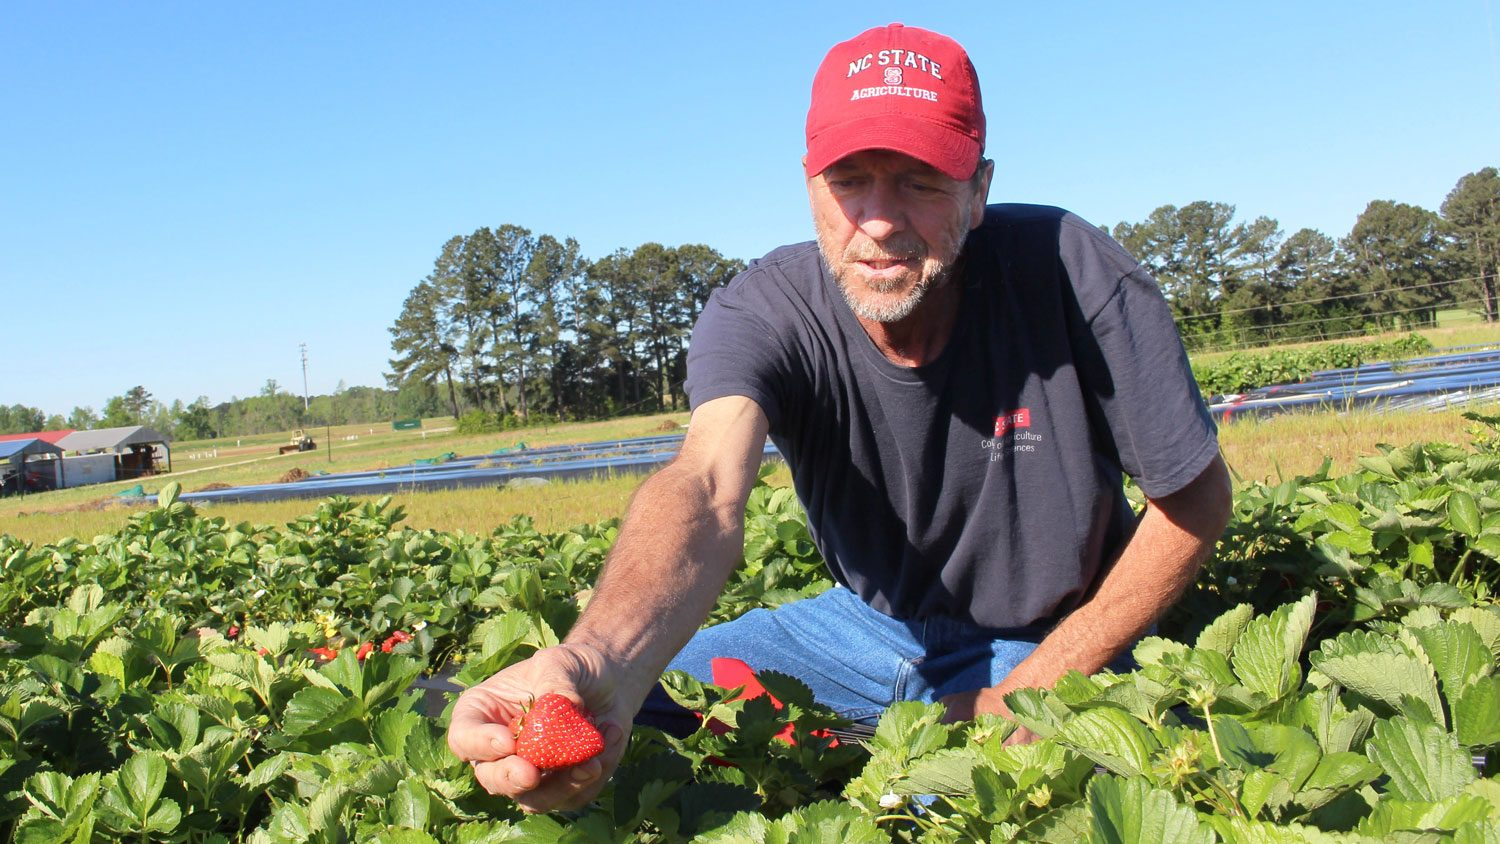 man squatting in strawberry research plot, holding a large strawberry